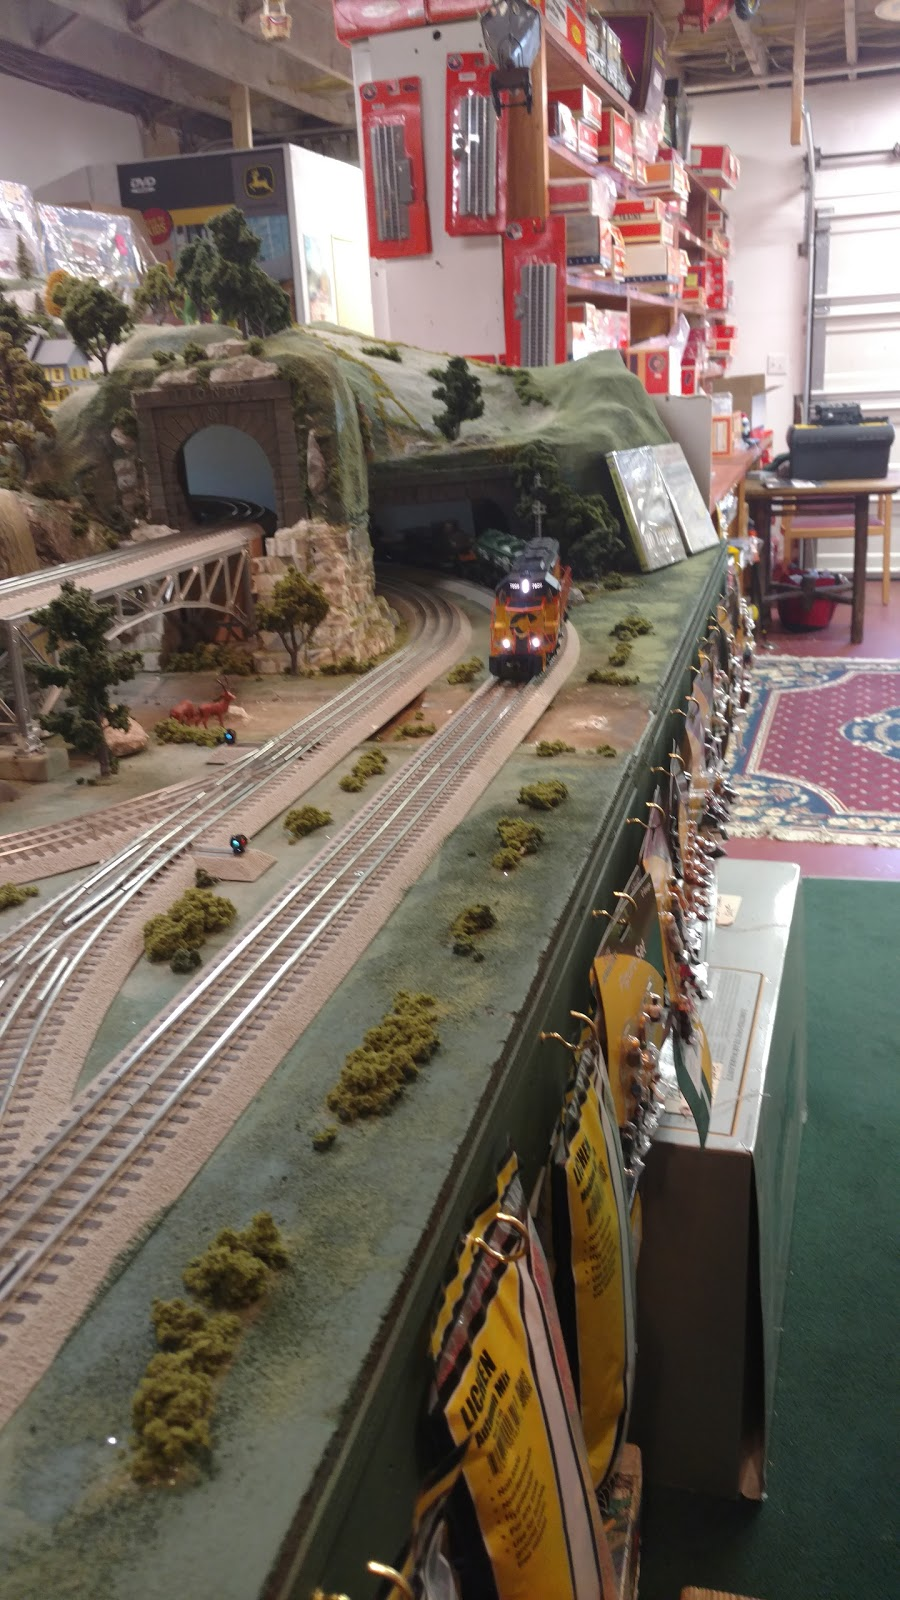 I Love Toy Trains Store - store  | Photo 7 of 10 | Address: 4212 W 1000 N, Michigan City, IN 46360, USA | Phone: (219) 879-2822